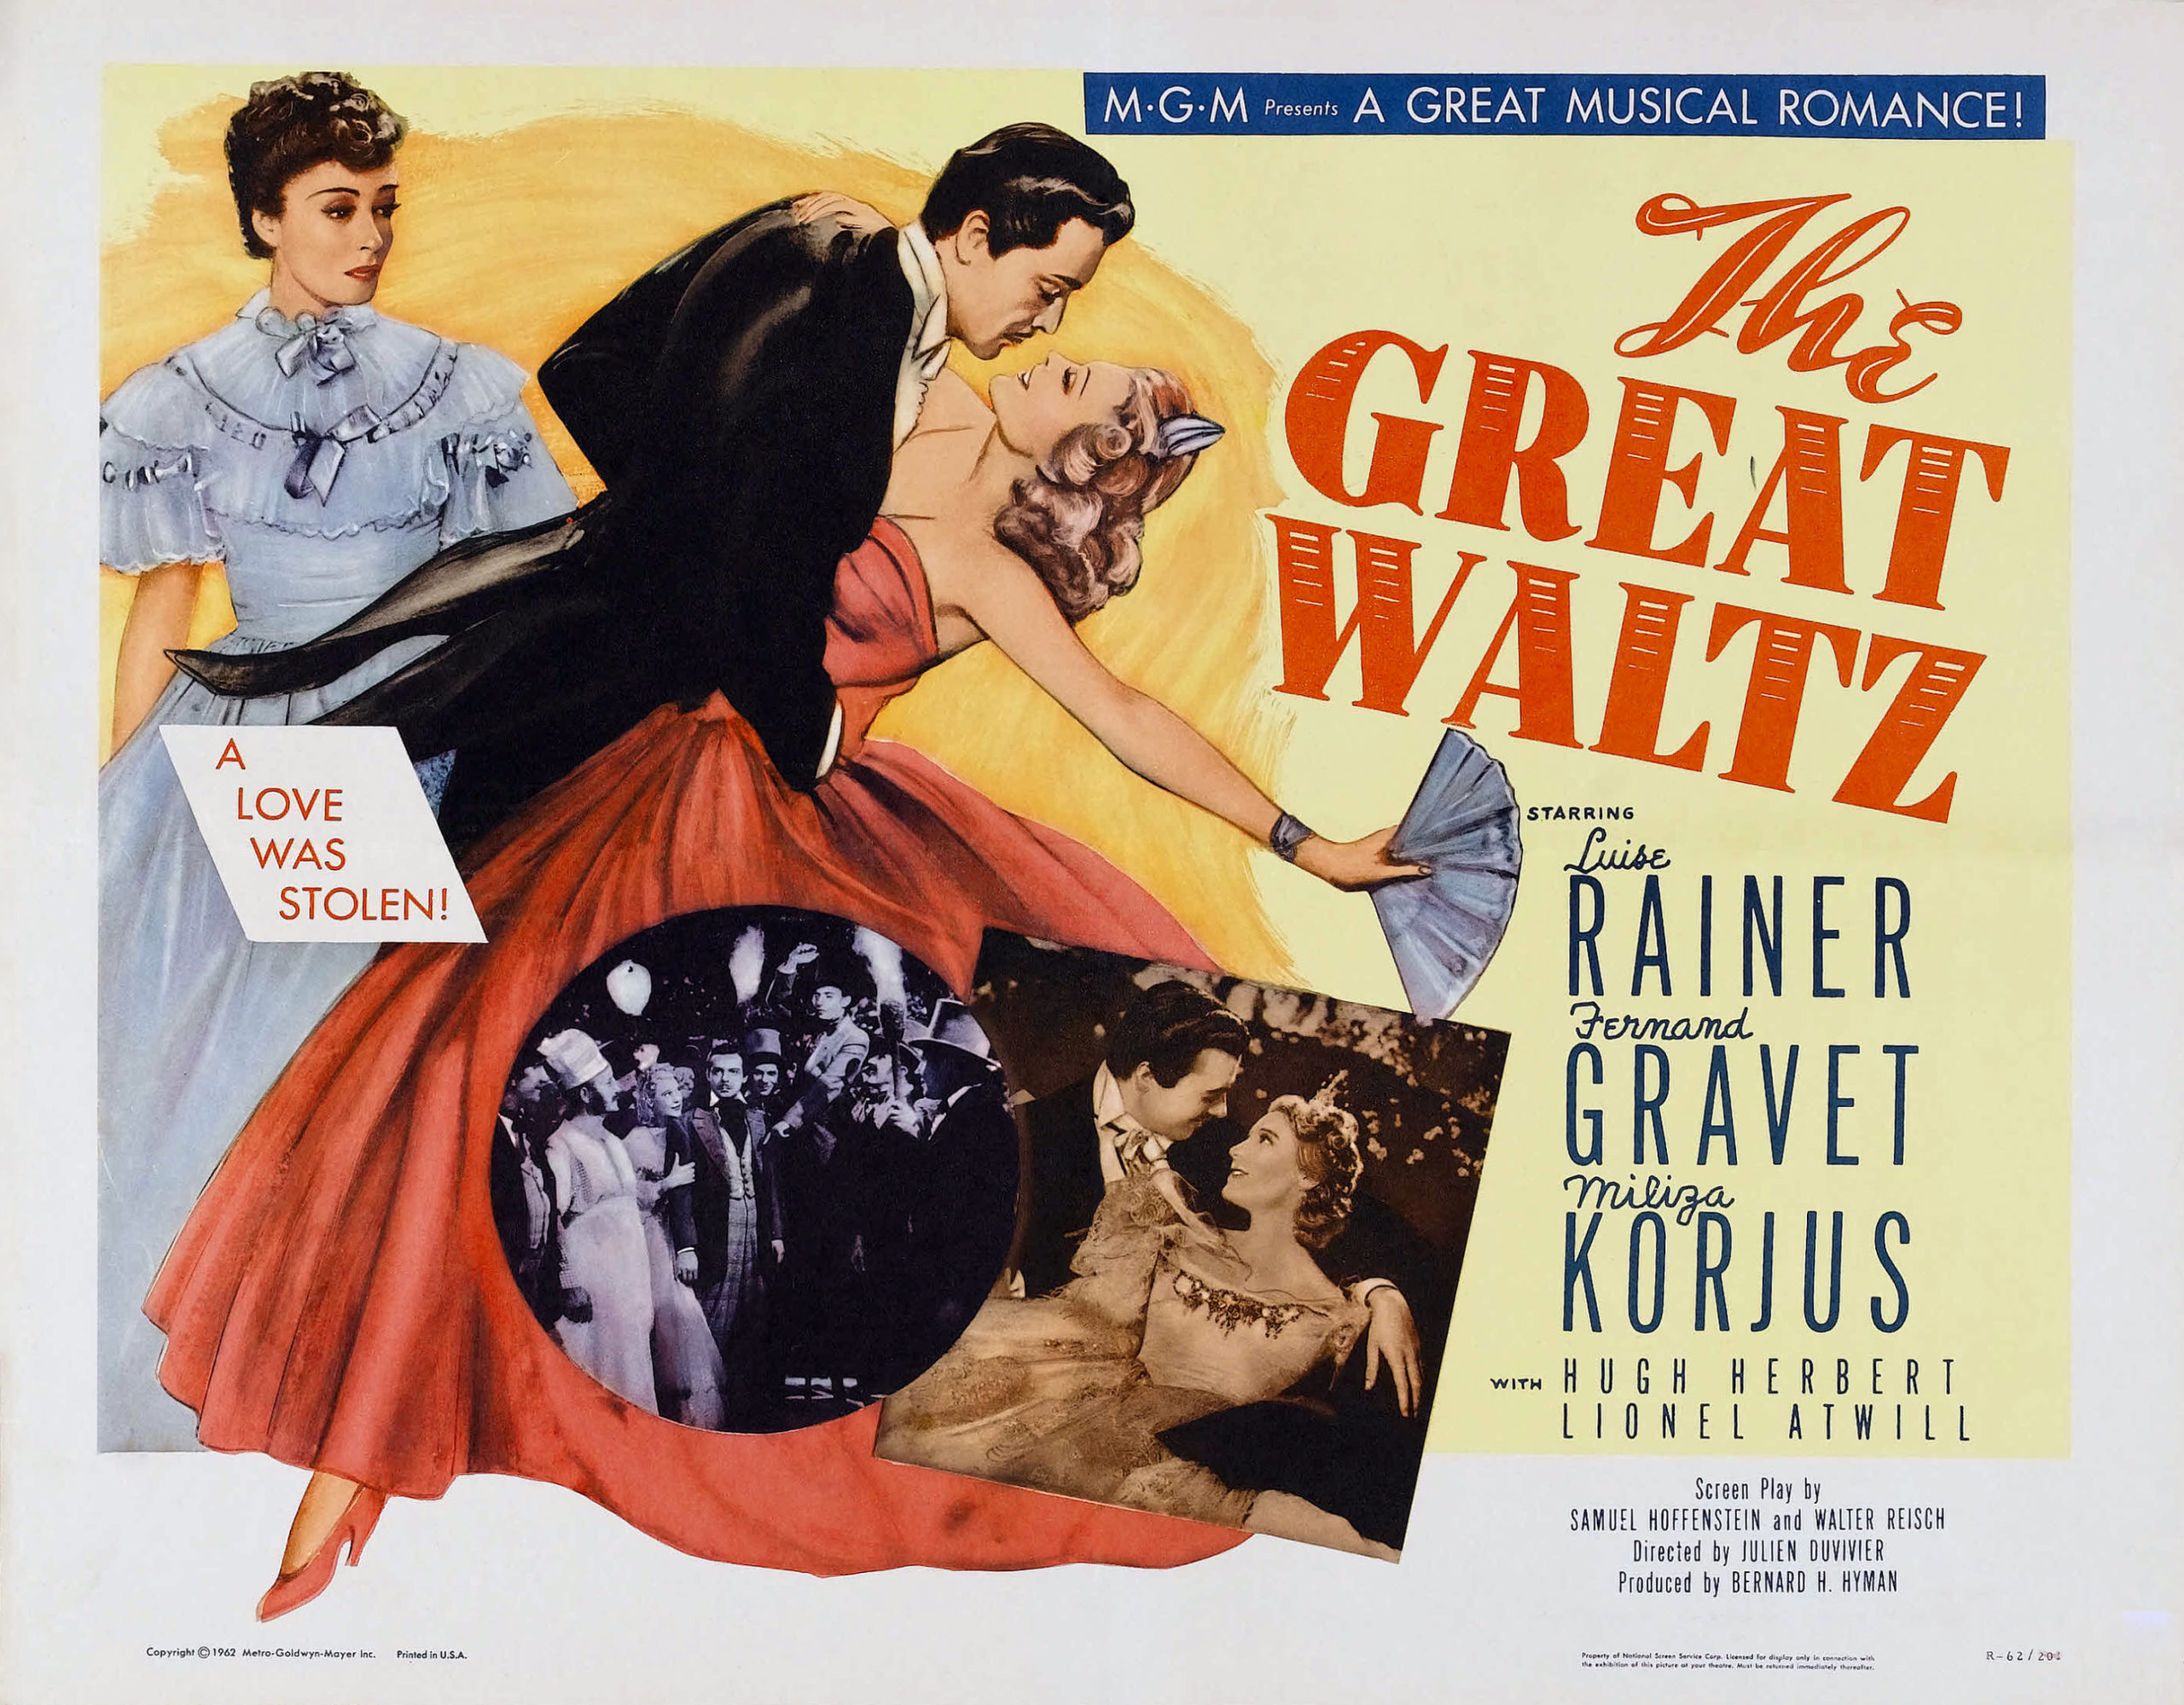 The Great Waltz (1938) – Johann Strauss II: La inspiración de la naturaleza